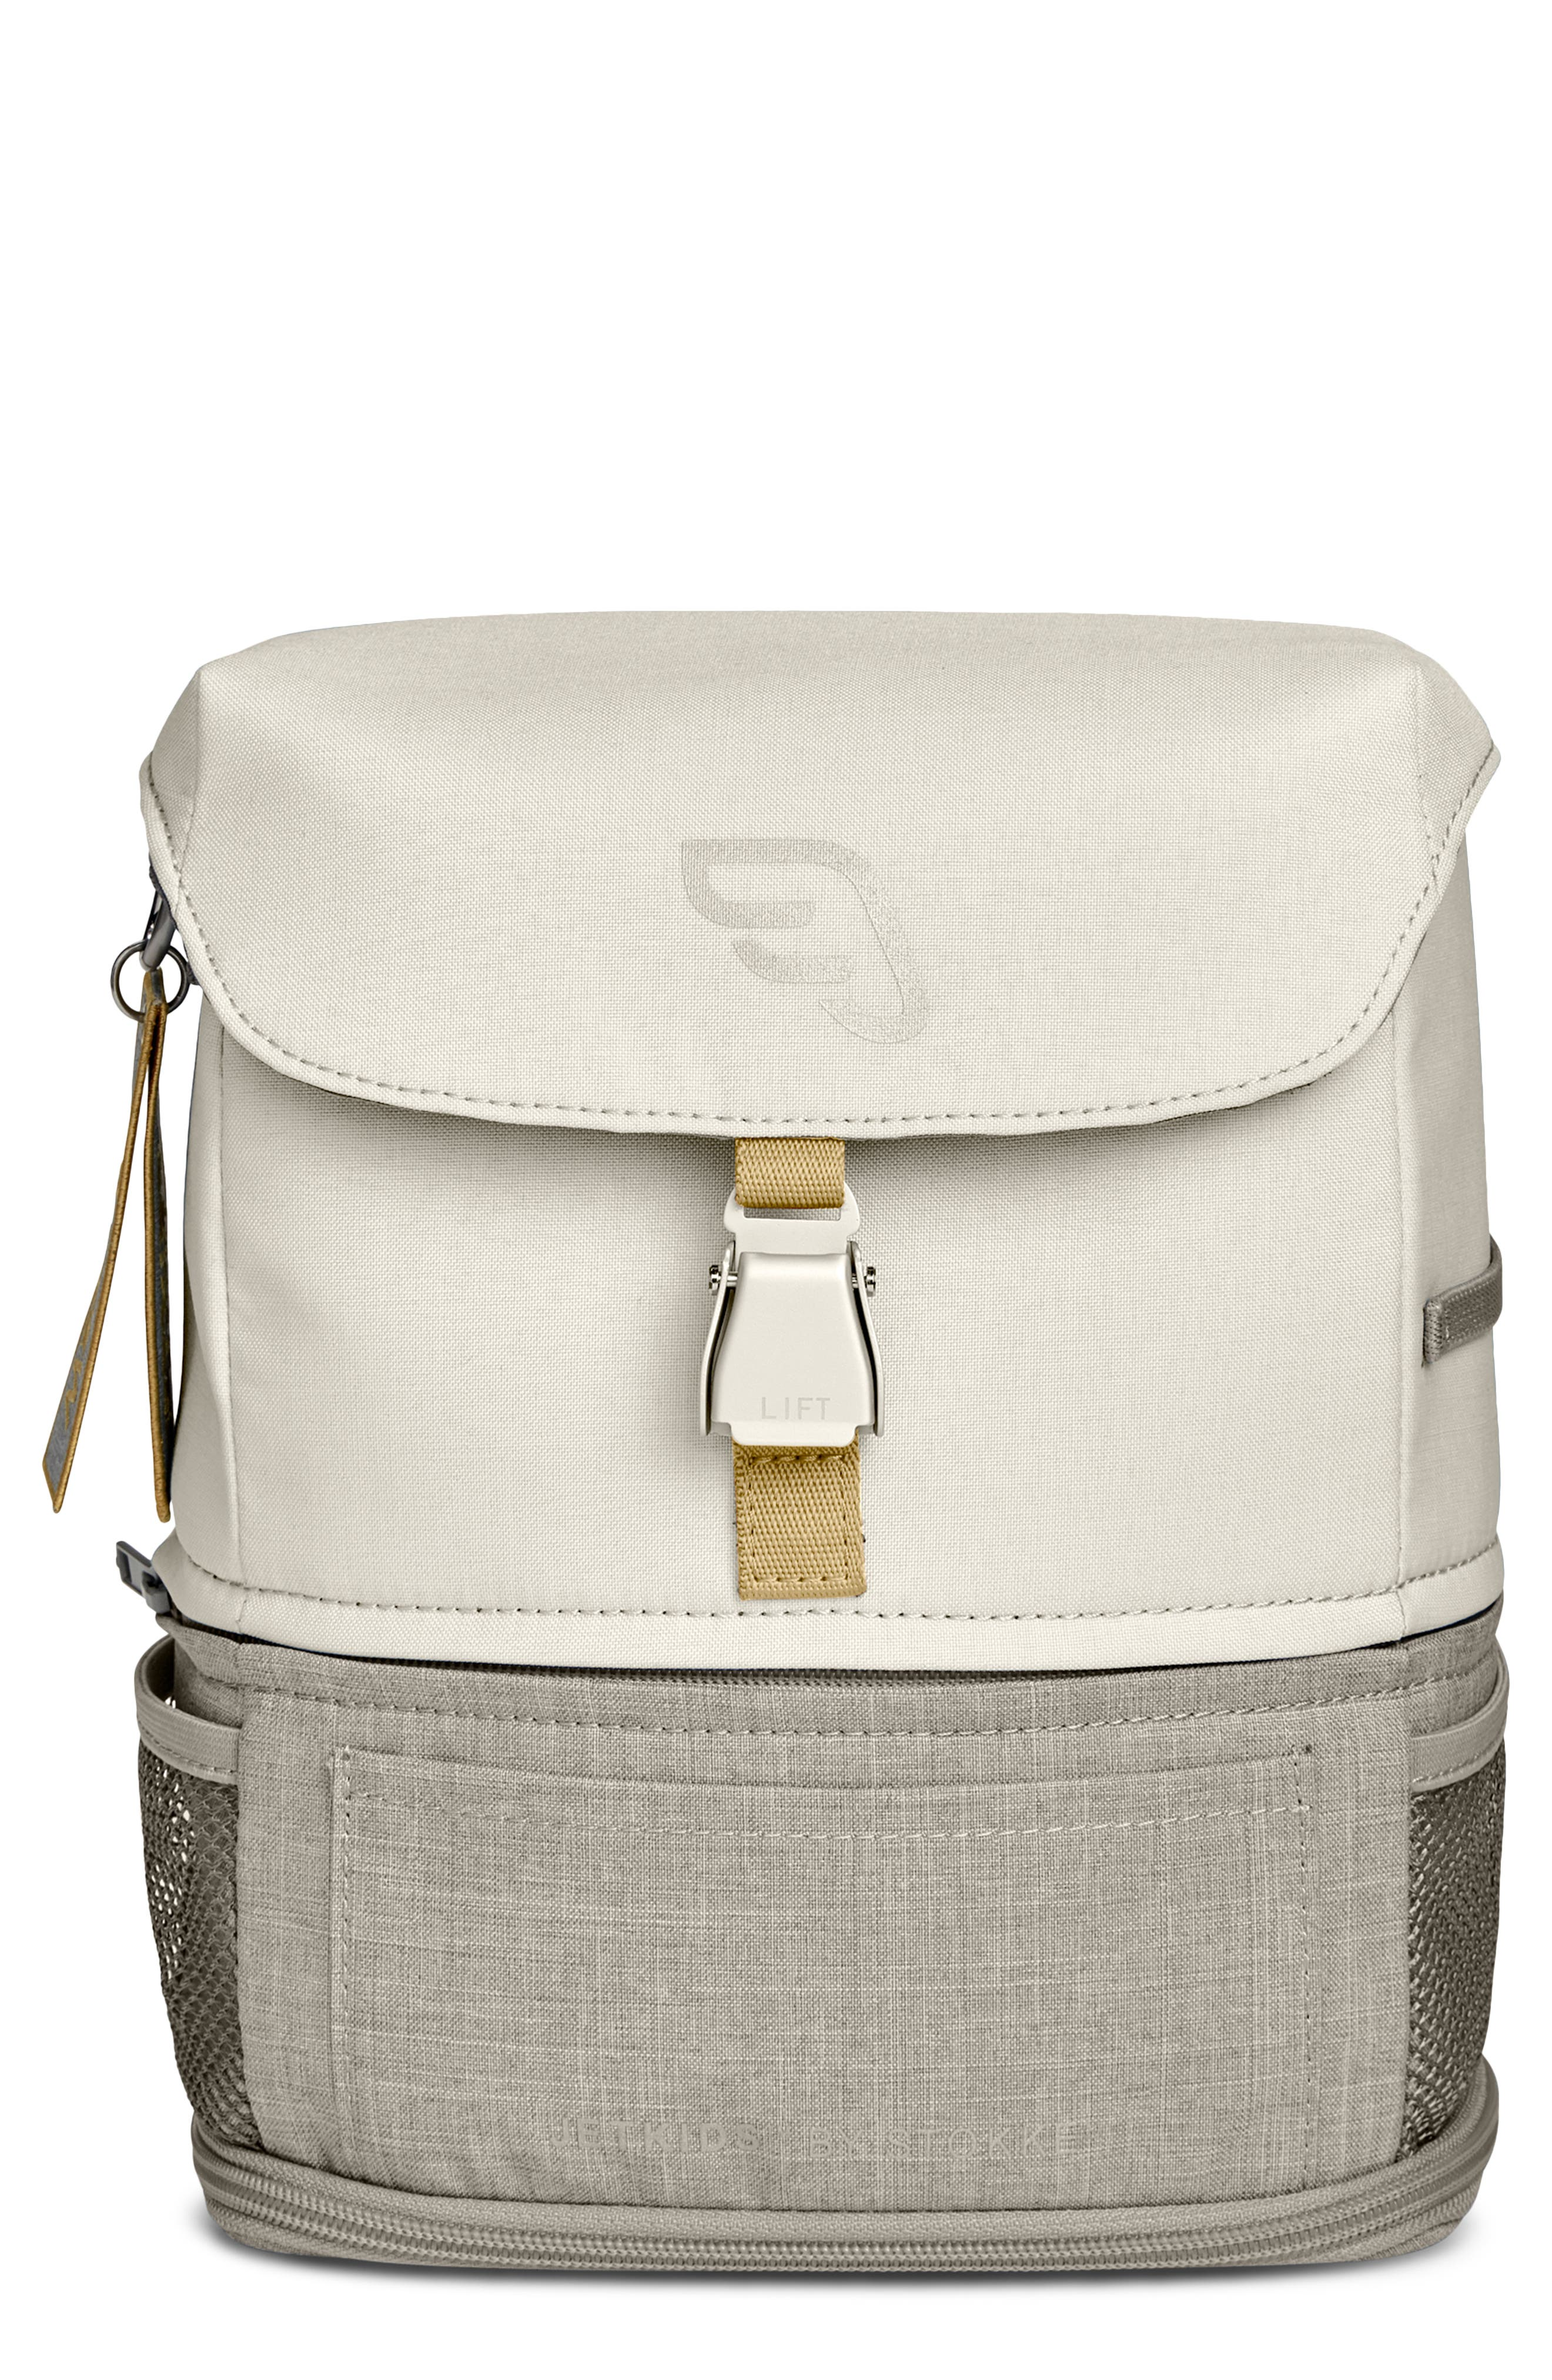 Stokke Jetkids By Stokke Crew Expandable Backpack - White